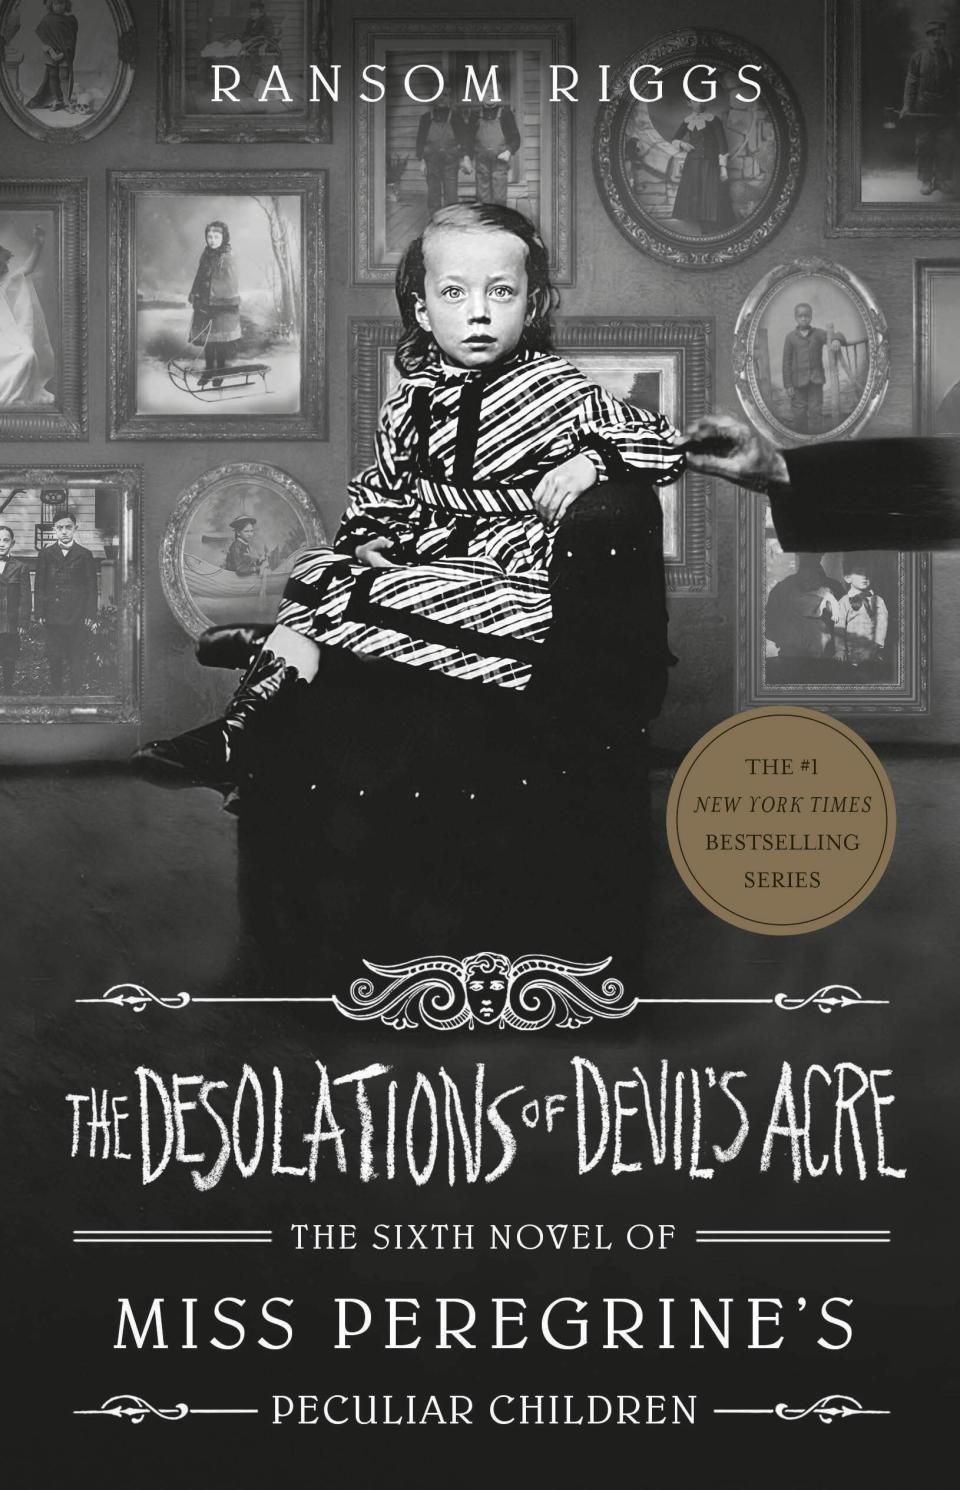 """This cover image released by Penguin Young Readers shows """"The Desolations of Devil's Acre"""" by Ransom Riggs, the final installment of the bestselling Miss Peregrine's Peculiar Children series, releasing Feb. 23. (Penguin Young Readers via AP)"""